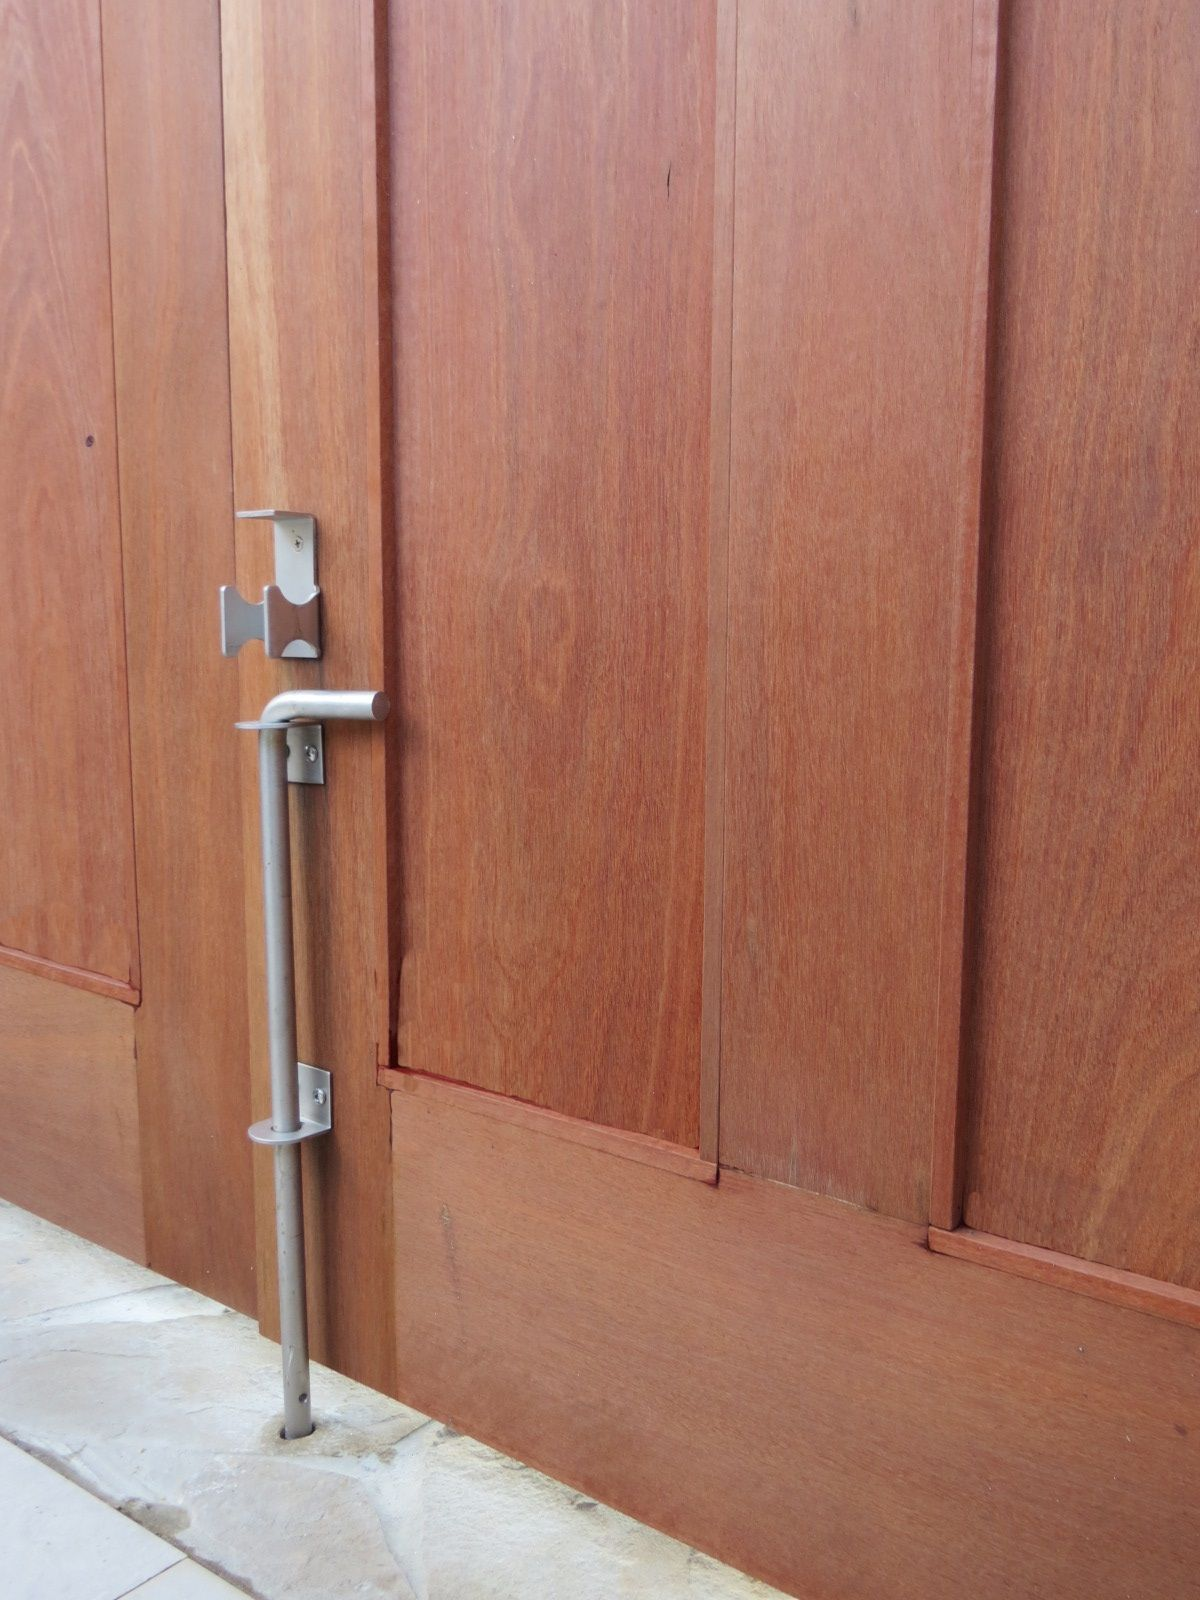 Bedroom Door No Longer Latches On Double Gates A Cane Bolt Can Be Used To Hold Open